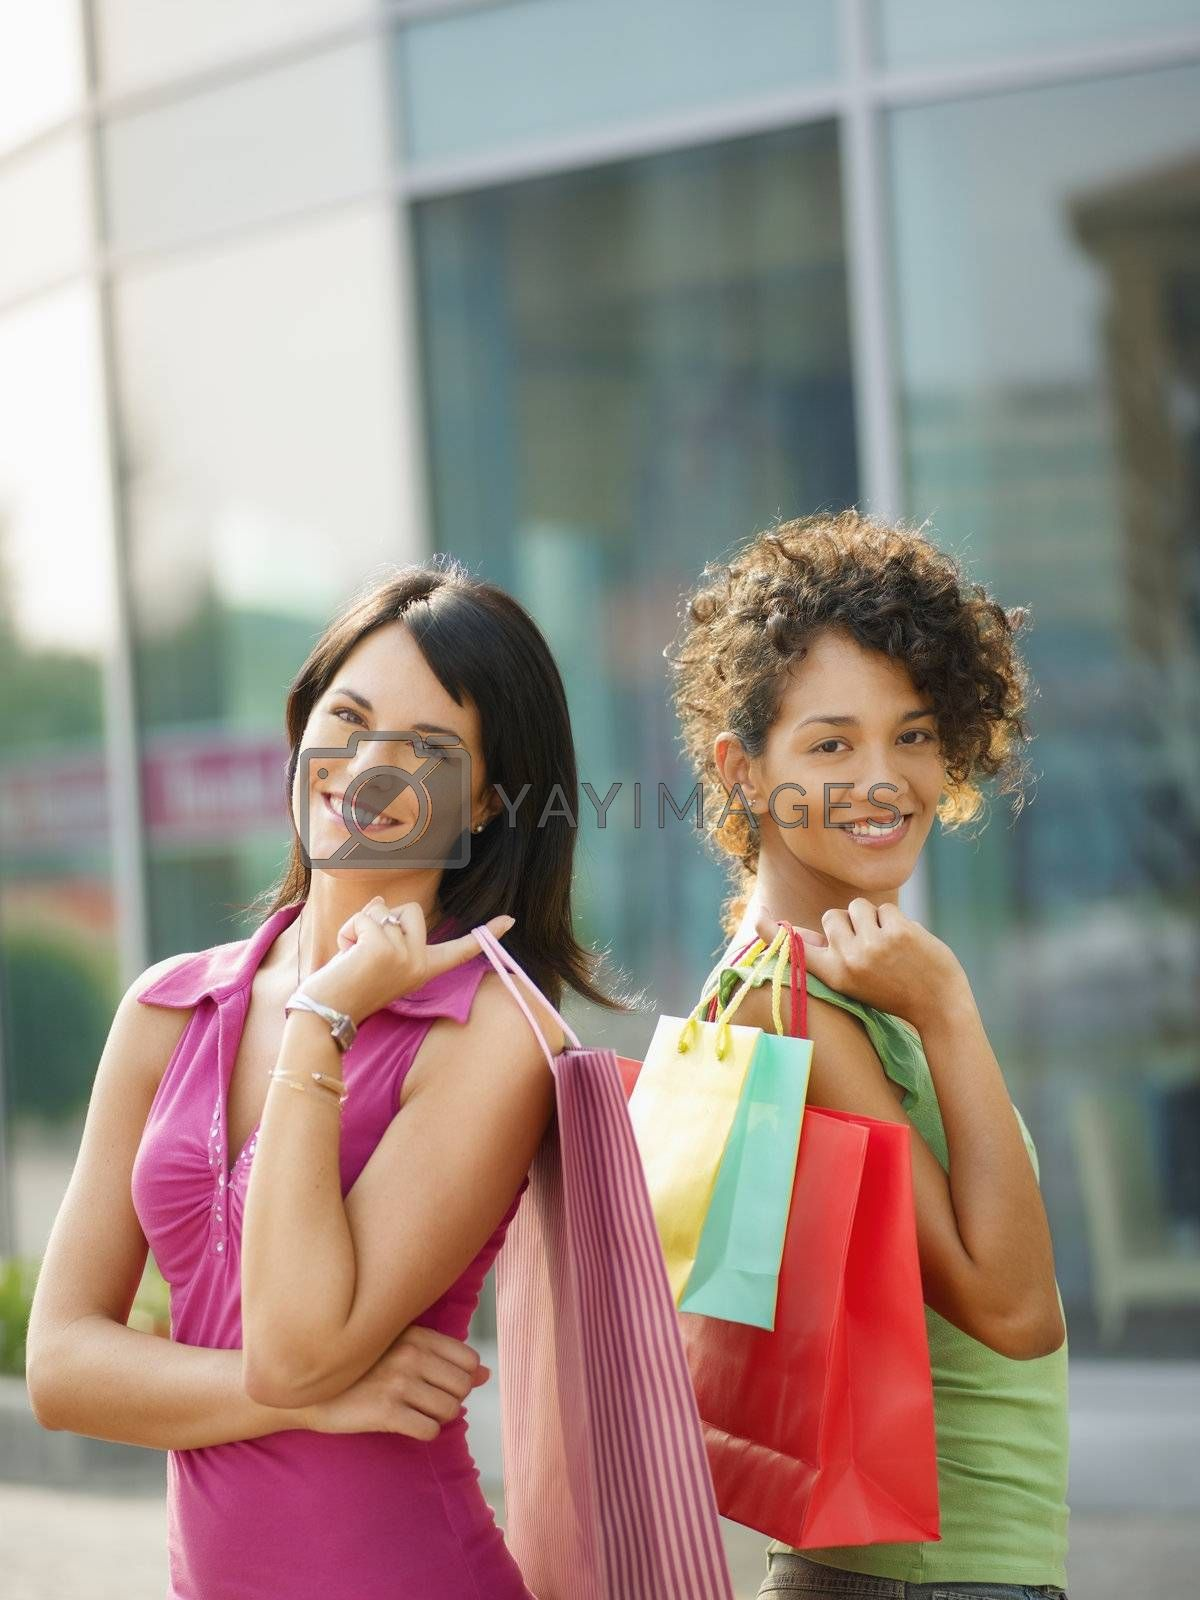 mid adult italian woman and hispanic woman carrying shopping bags out of shopping center. Vertical shape, waist up, copy space